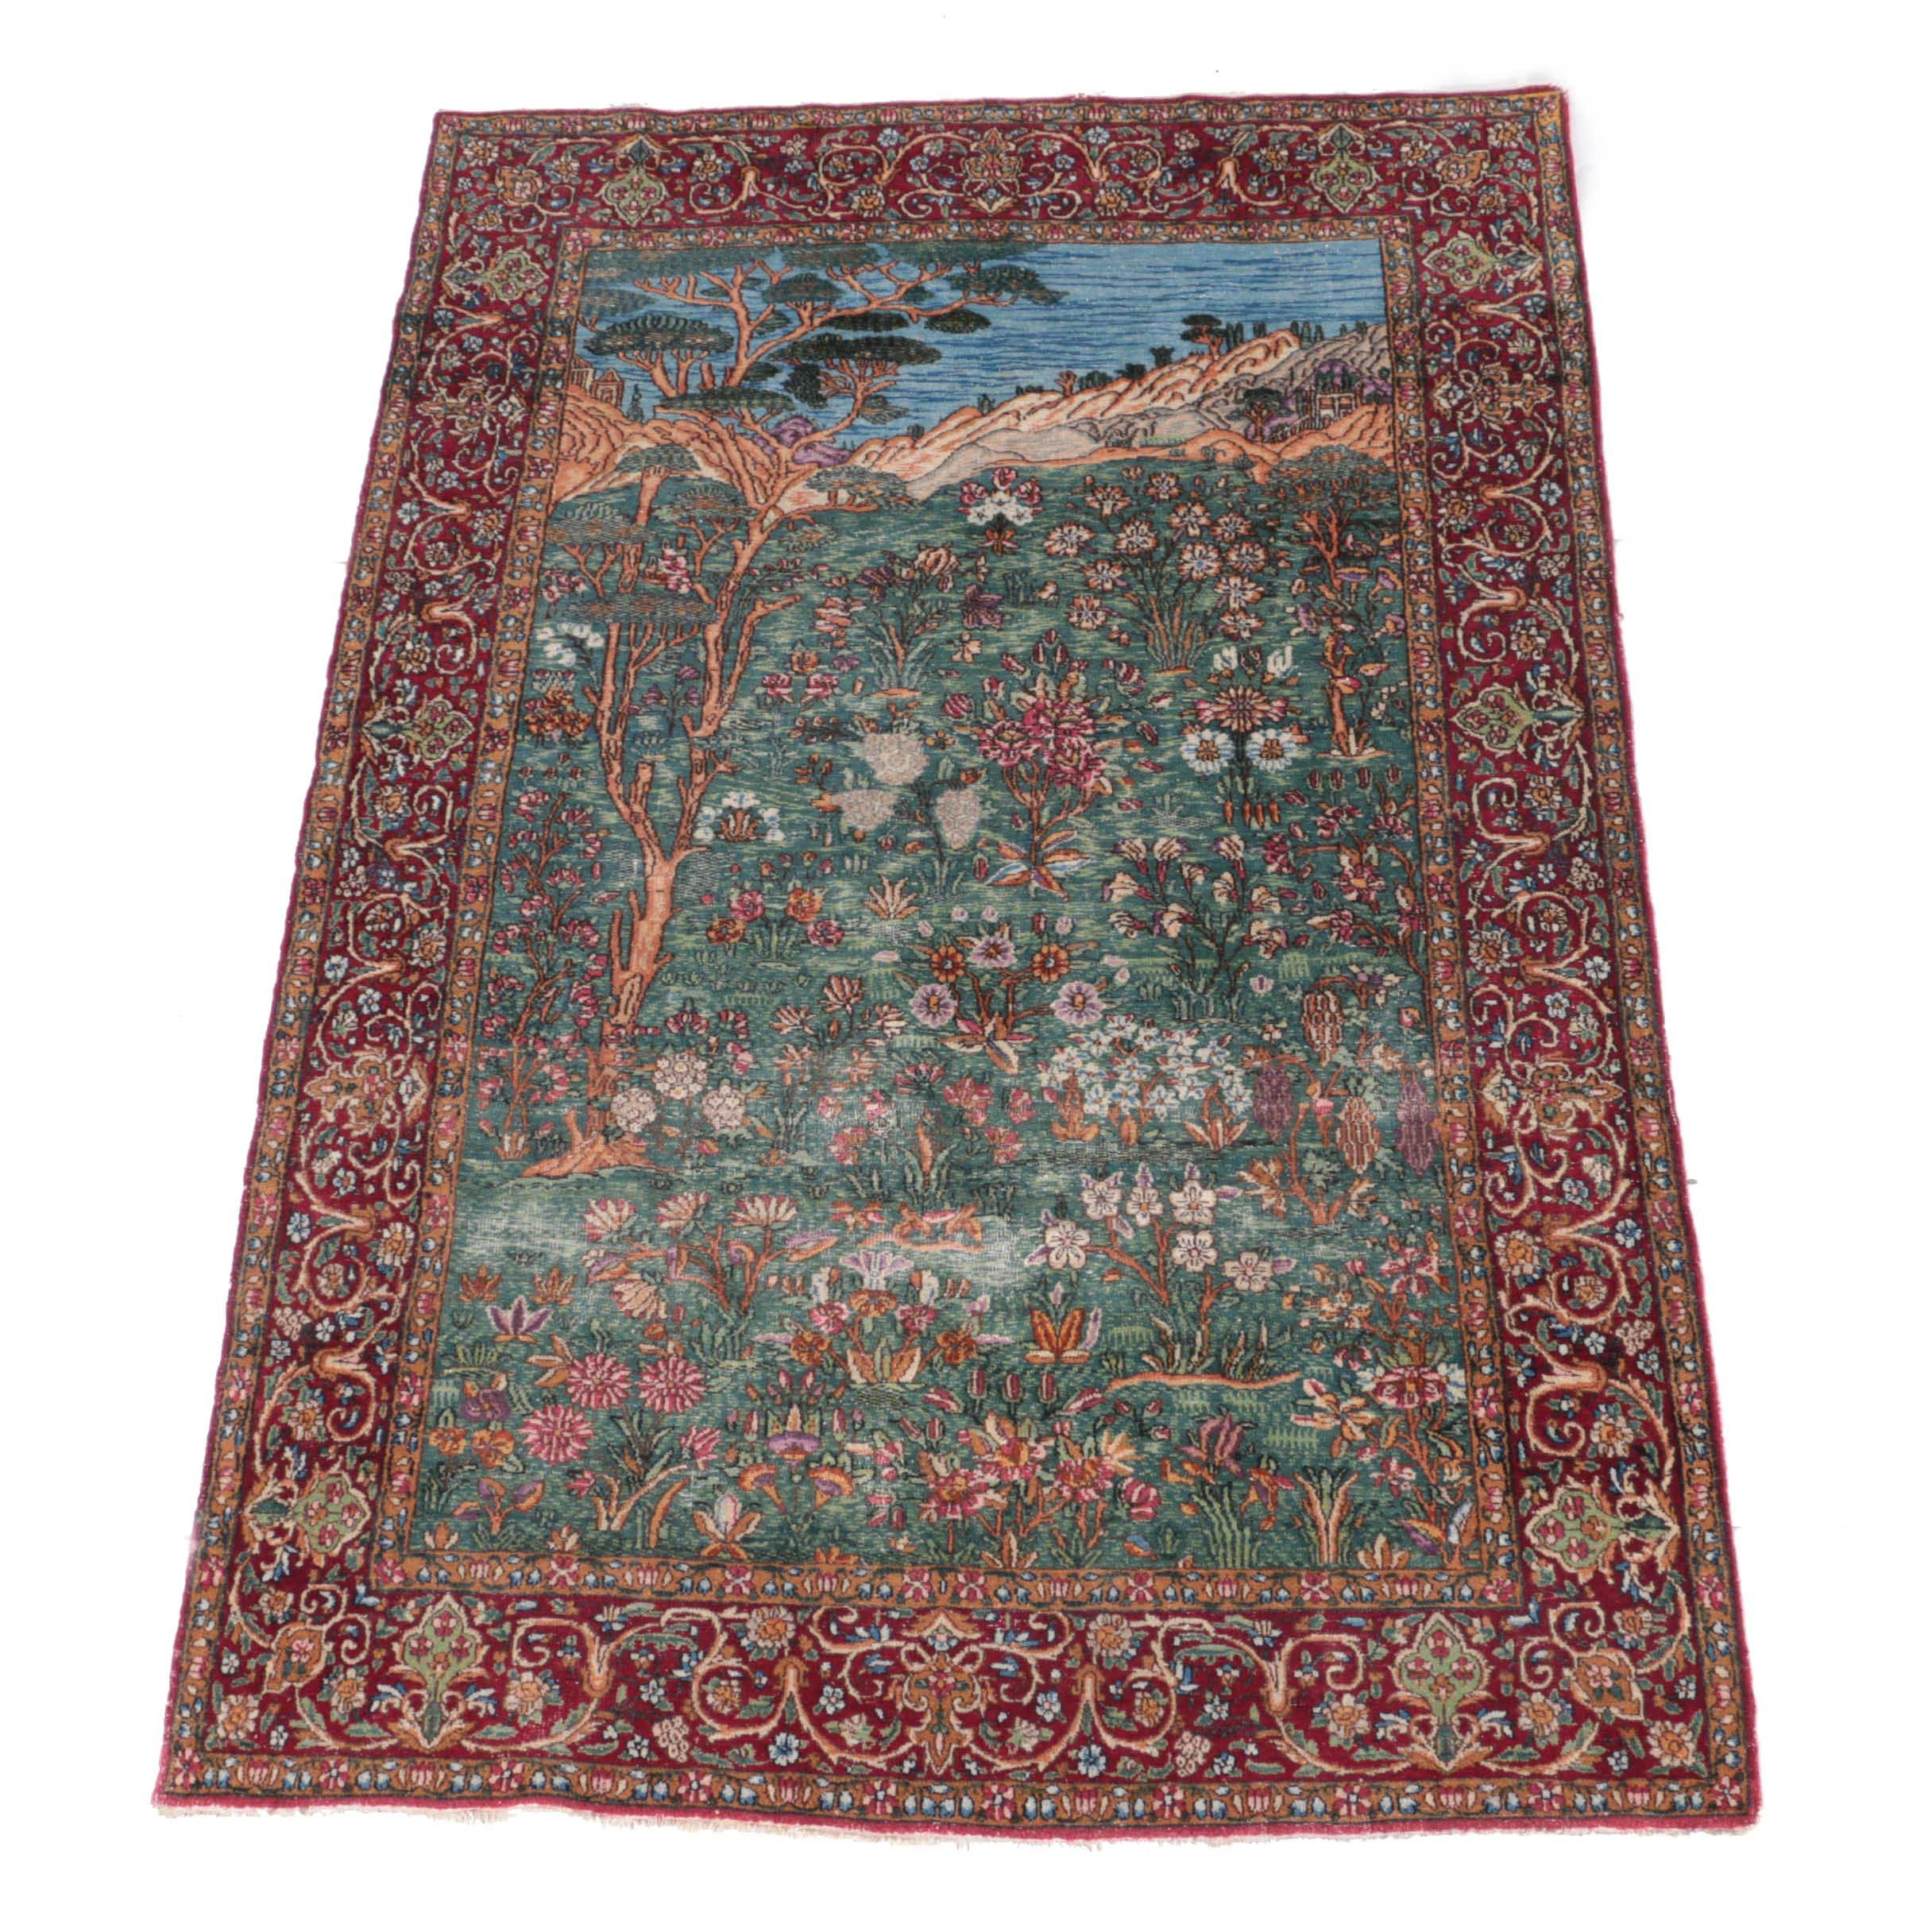 Semi-Antique Hand-Knotted Persian Pictorial Area Rug